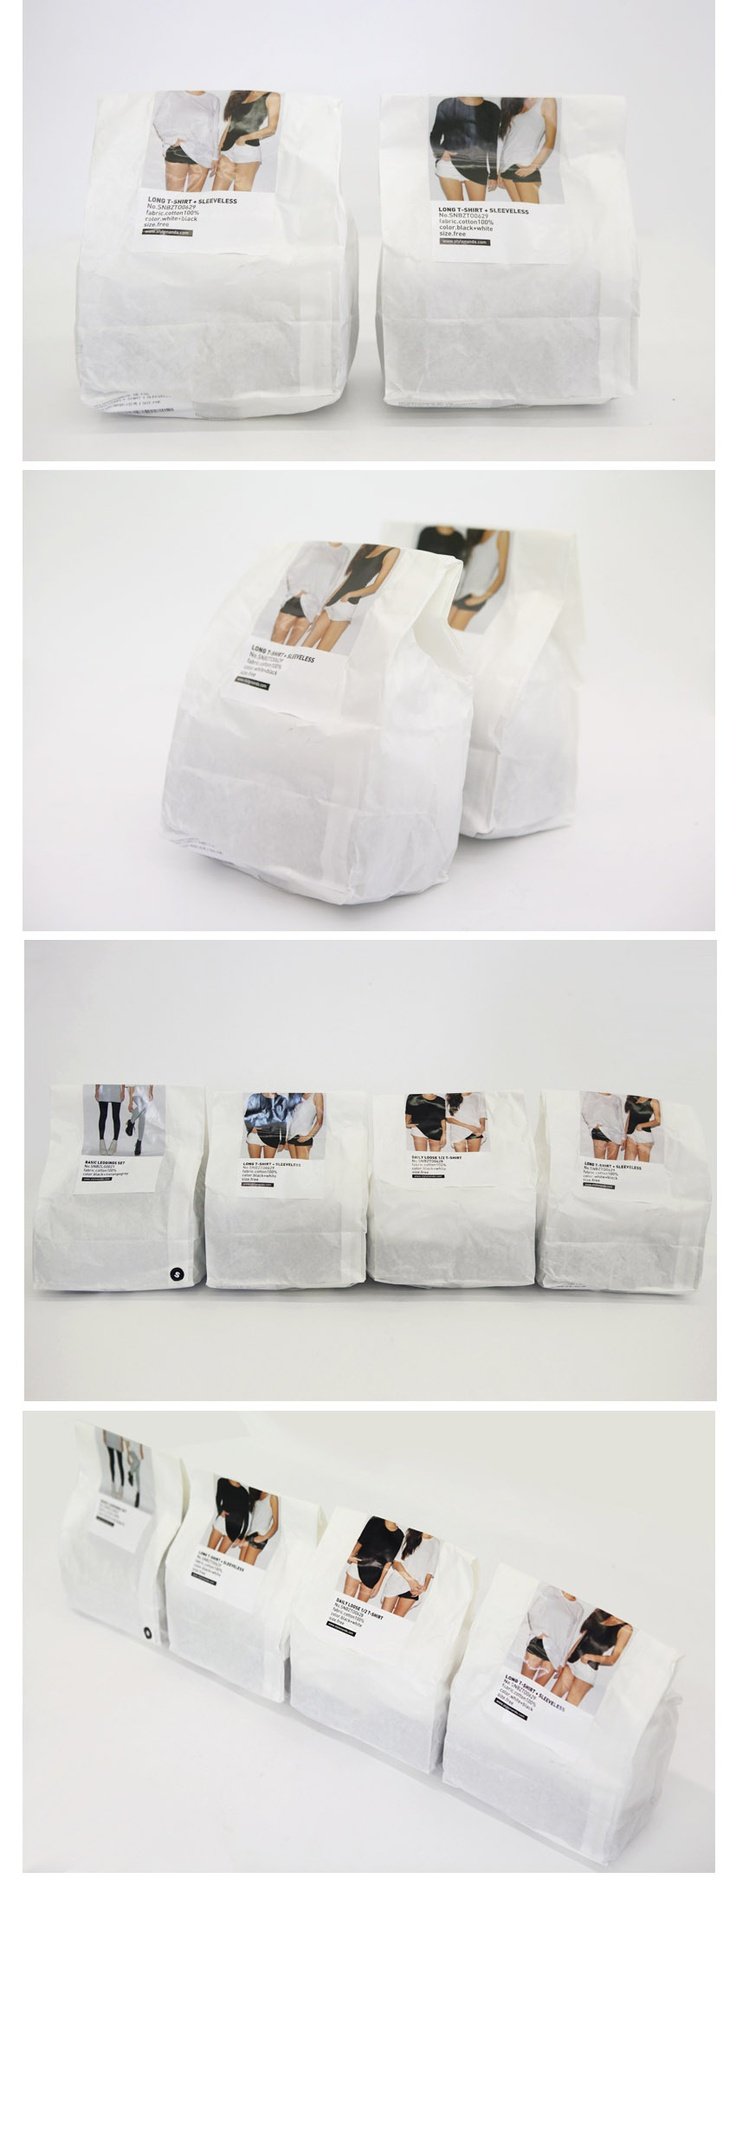 하루도 잊을수없어요!! 당신의 스타일난다!! ^^ Interesting #underwear #packaging. If you want to customize a good-looking t-shirt packaging, visit www.unifiedmanufacturing.com.